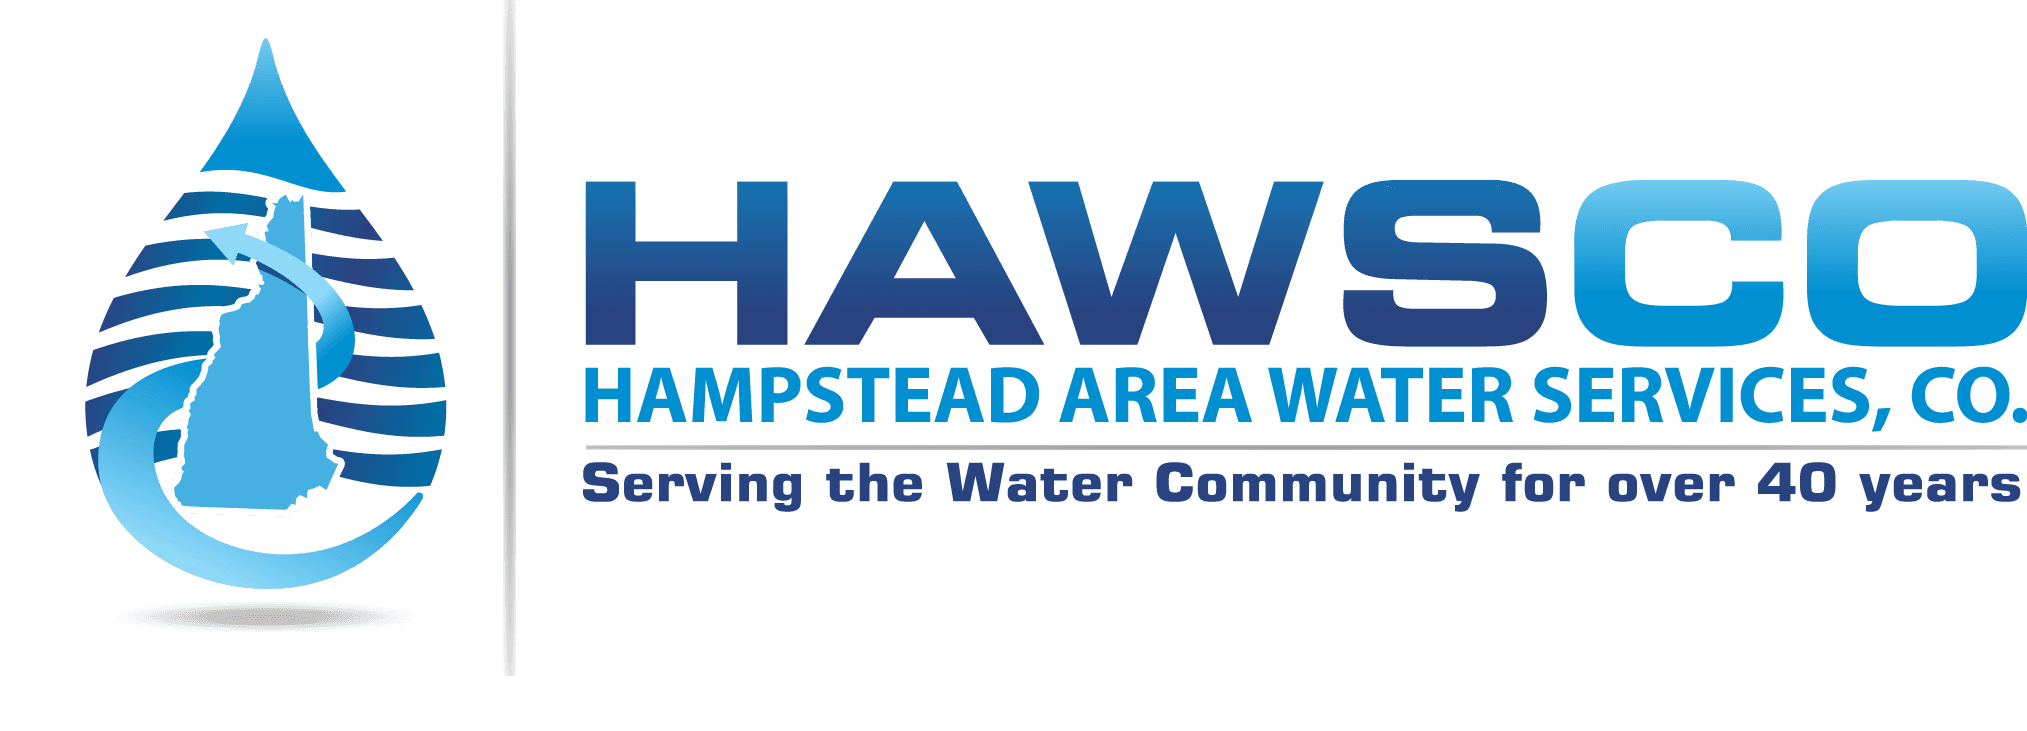 Hampstead Area Water Services Co is the water division of Lewis Builders Development